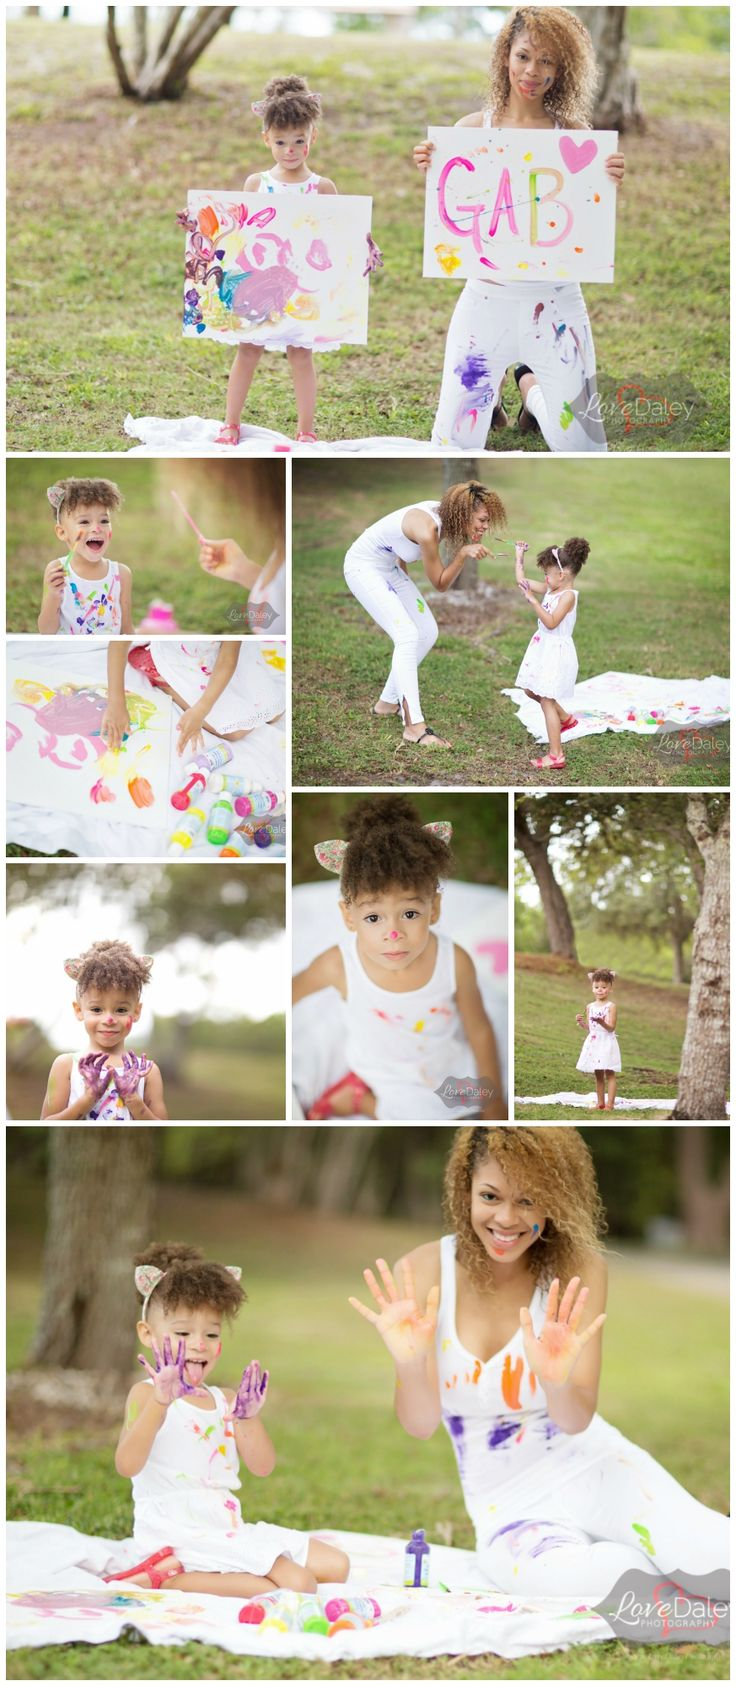 "Creative Finger Painting Mother and Daughter ""Mommy and Me"" Family Photo shoot. Photo shoot ideas, Outfit inspiration for family photo shoots, South Florida Photographer, Love Daley Photography"